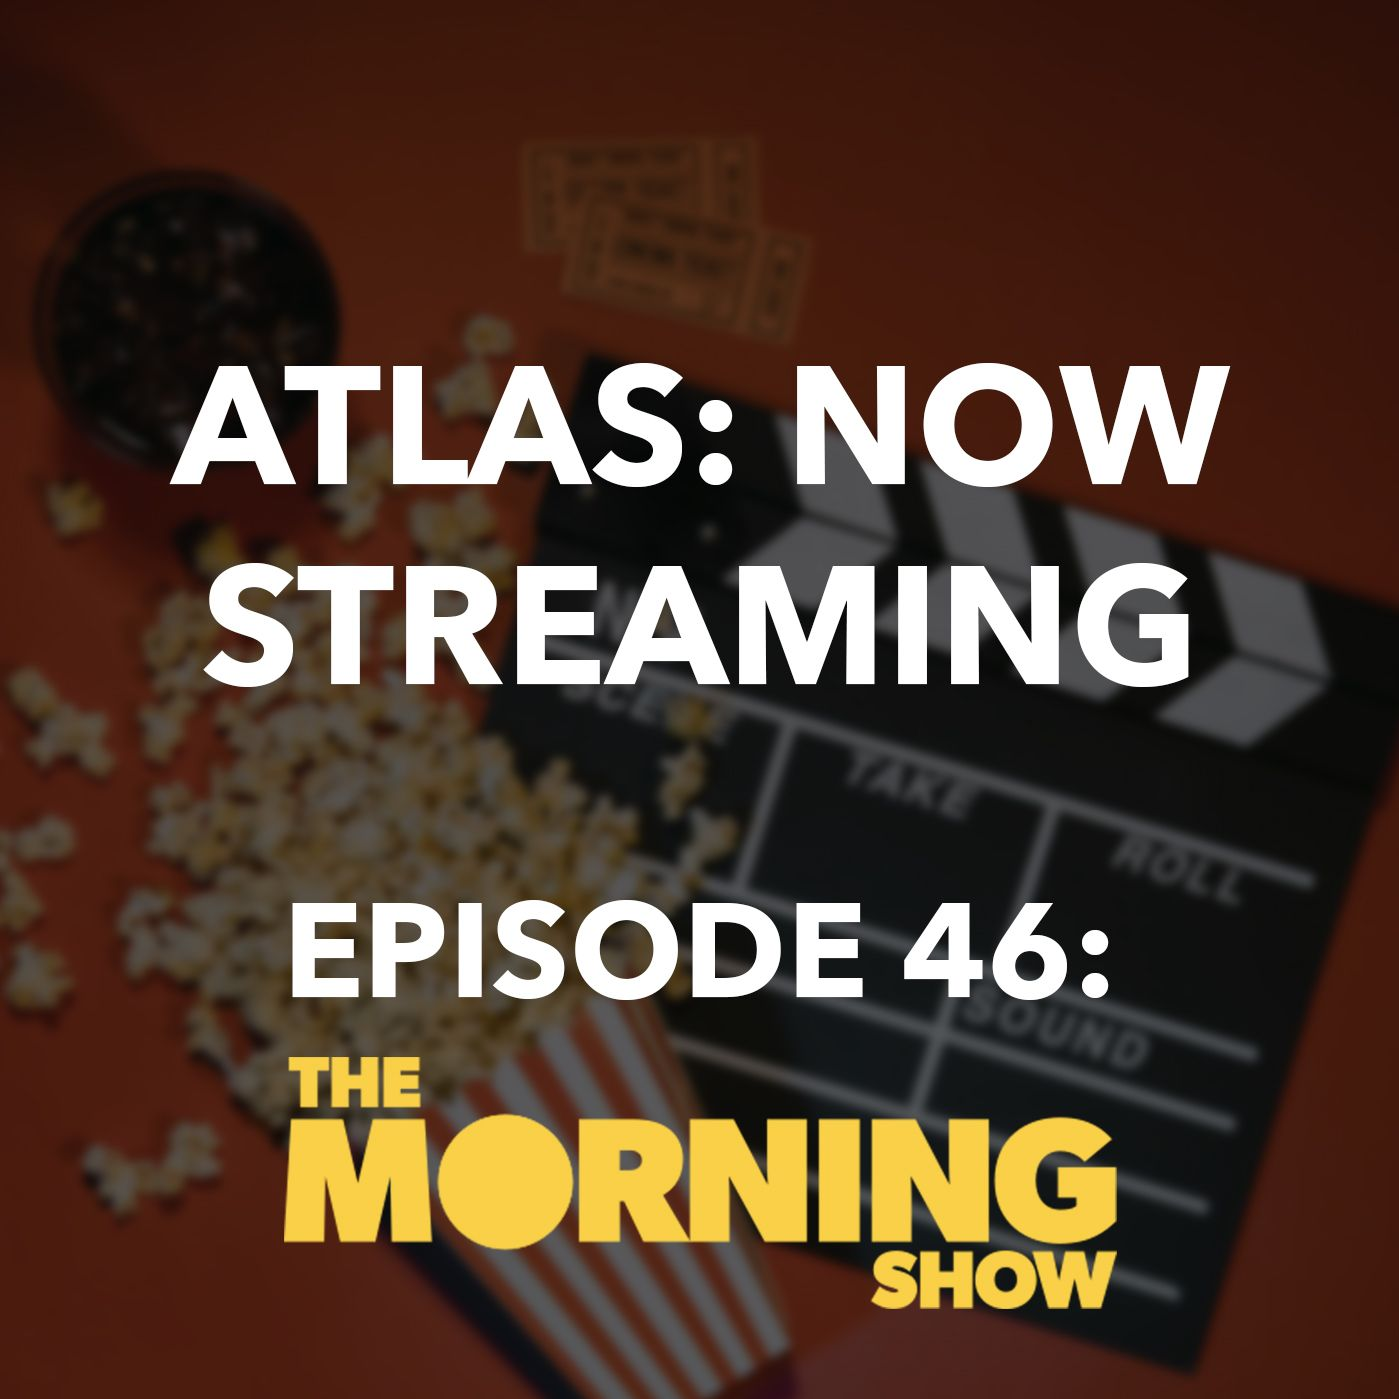 The Morning Show - Atlas: Now Streaming Episode 46